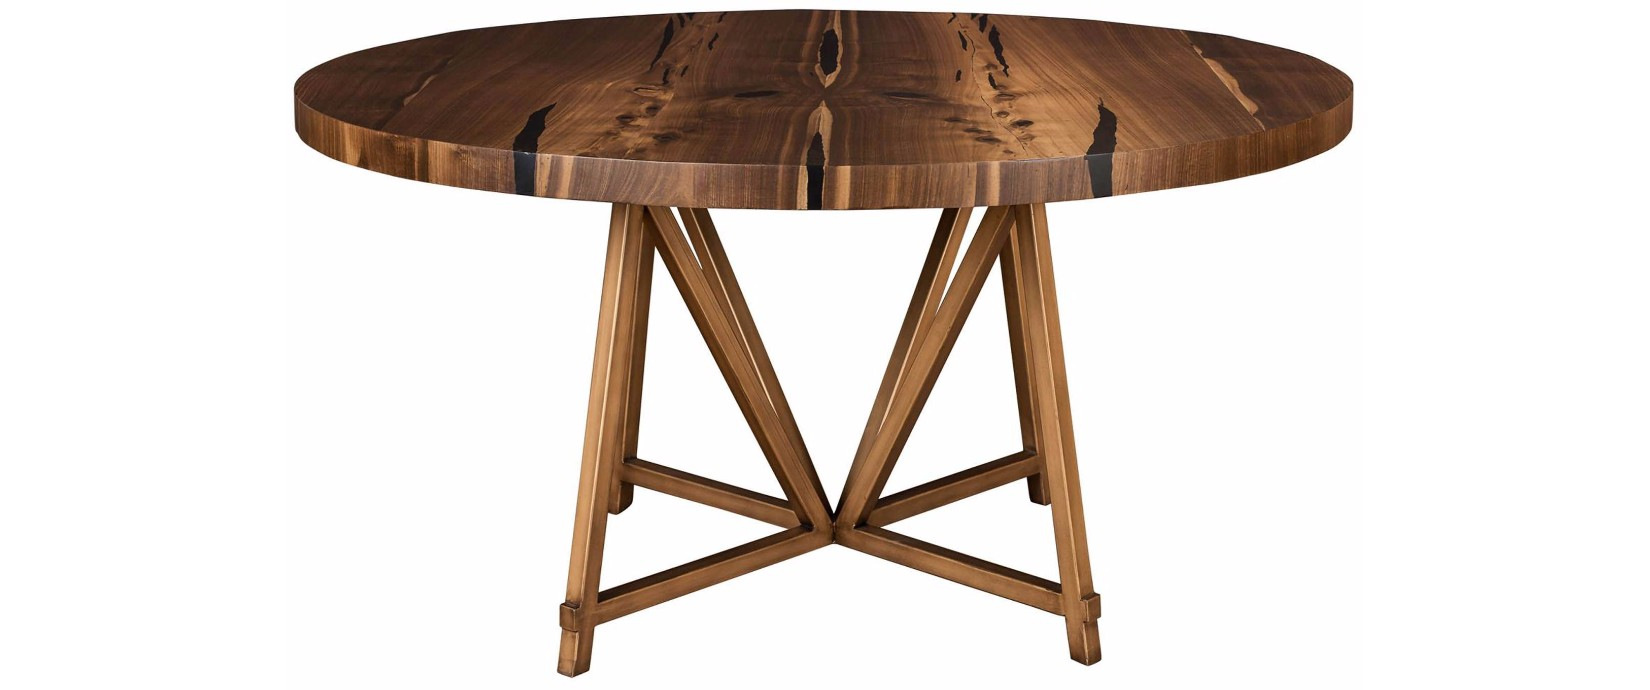 Nexo round dining table taracea Round dinner table for 10